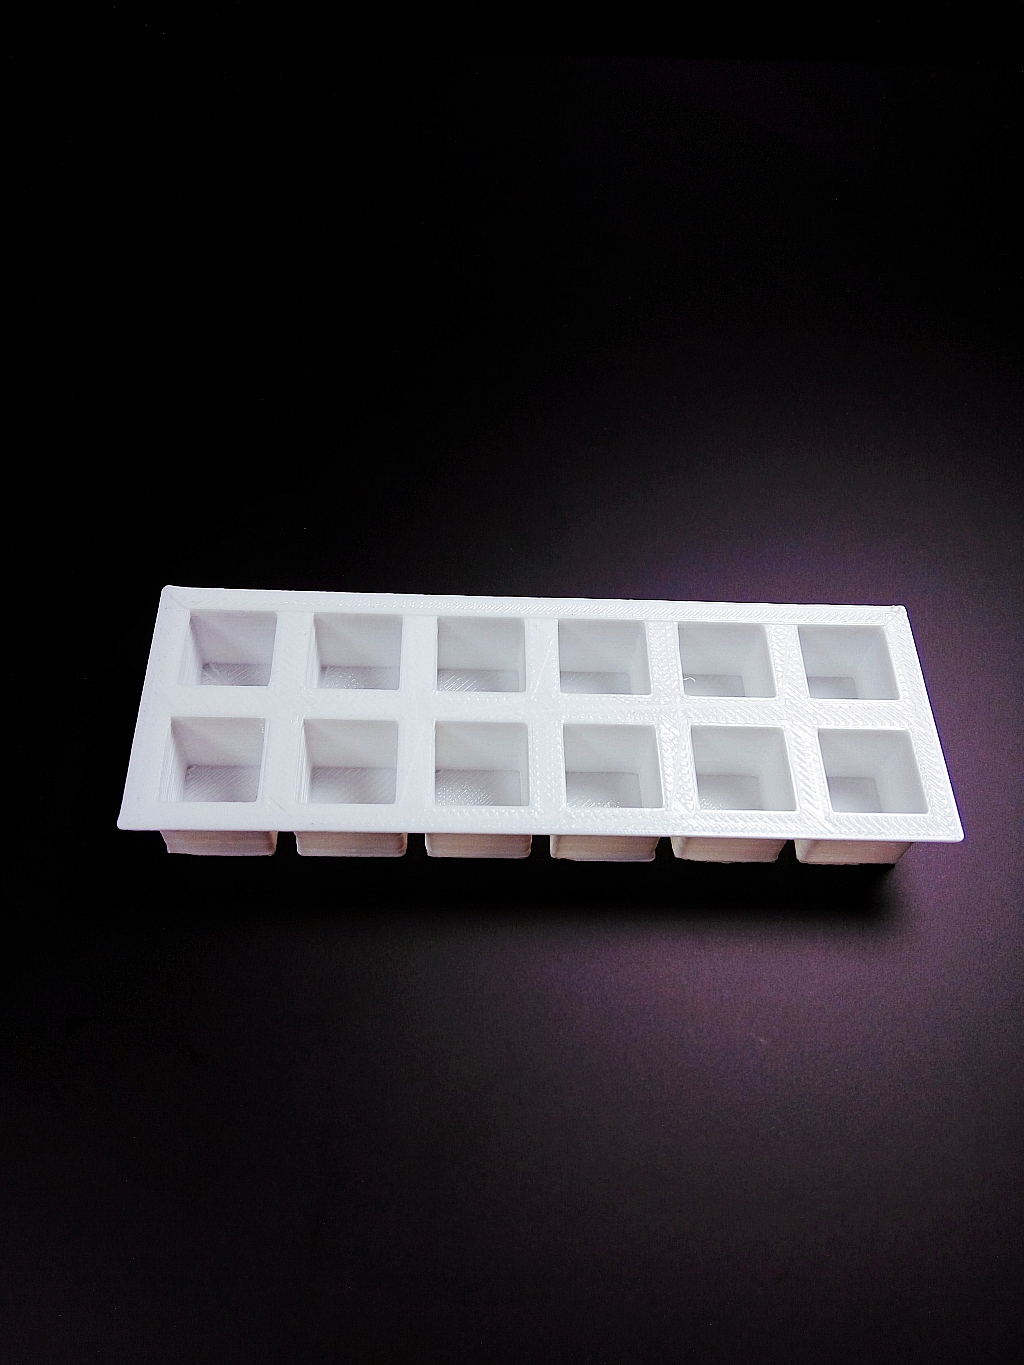 The Perfect Ice Cube Tray image